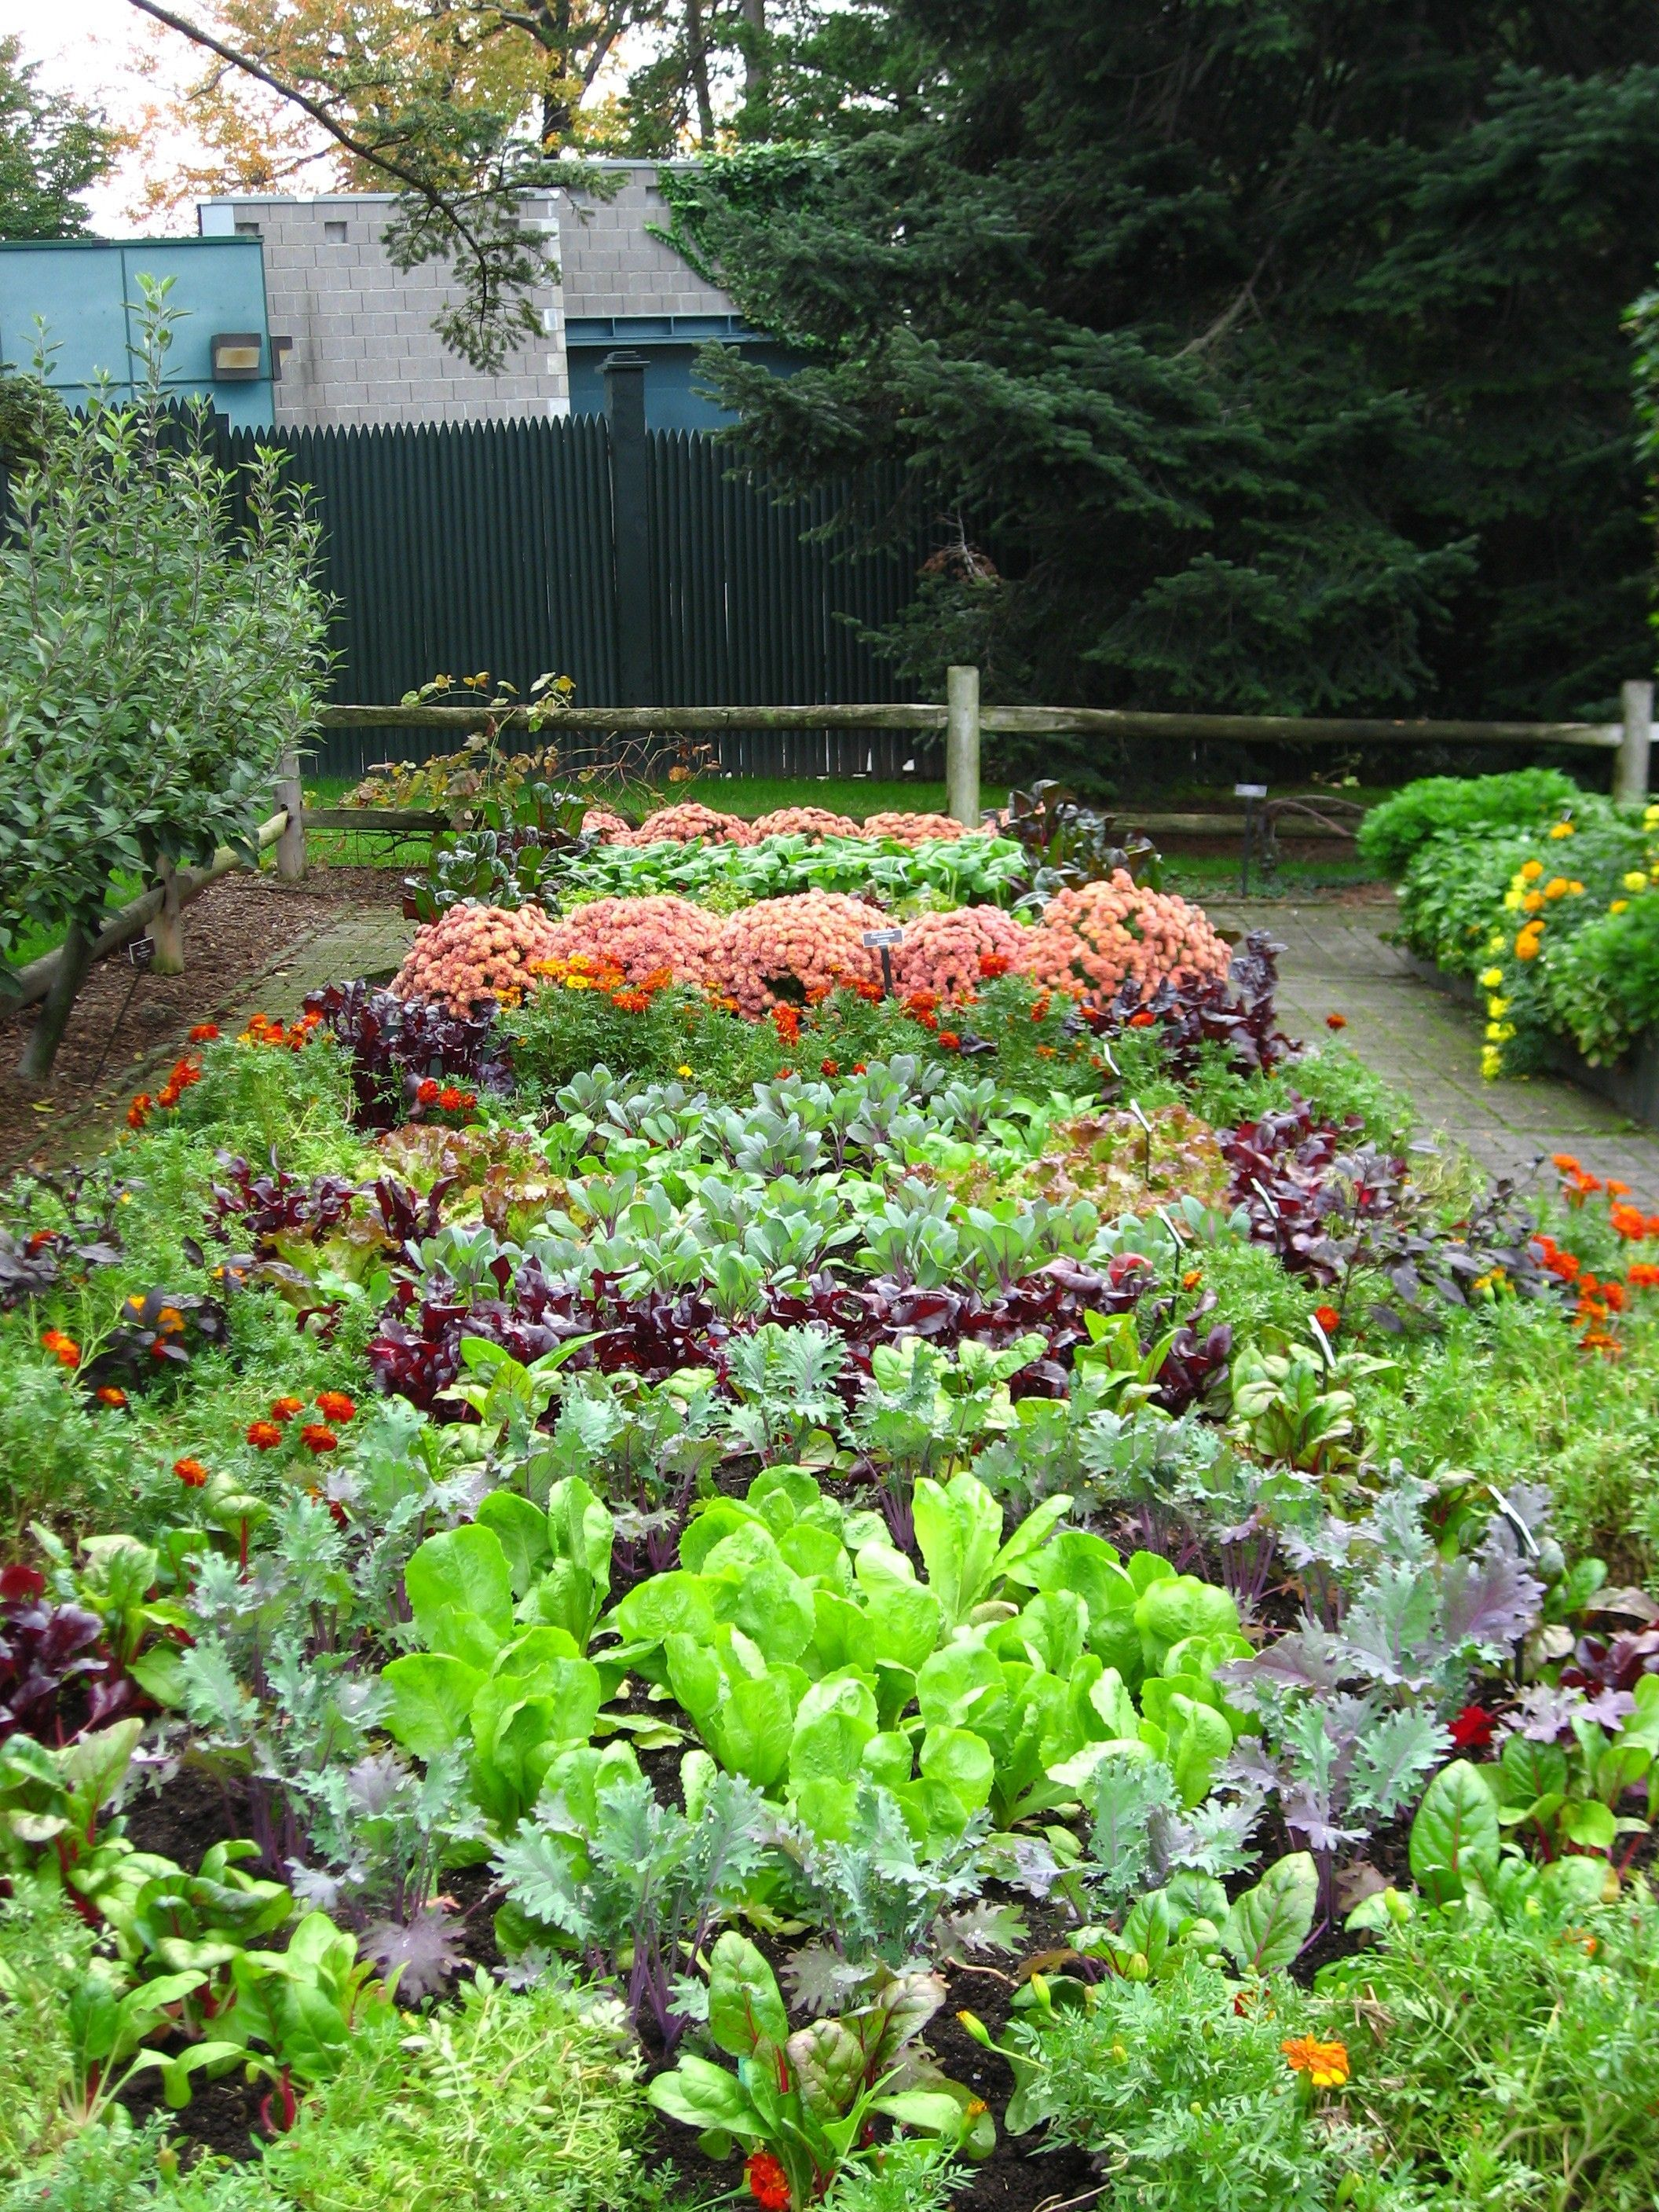 what is a potager garden and how it is different from a vegetable garden how to design a potager garden what is the best layout for a potager garden